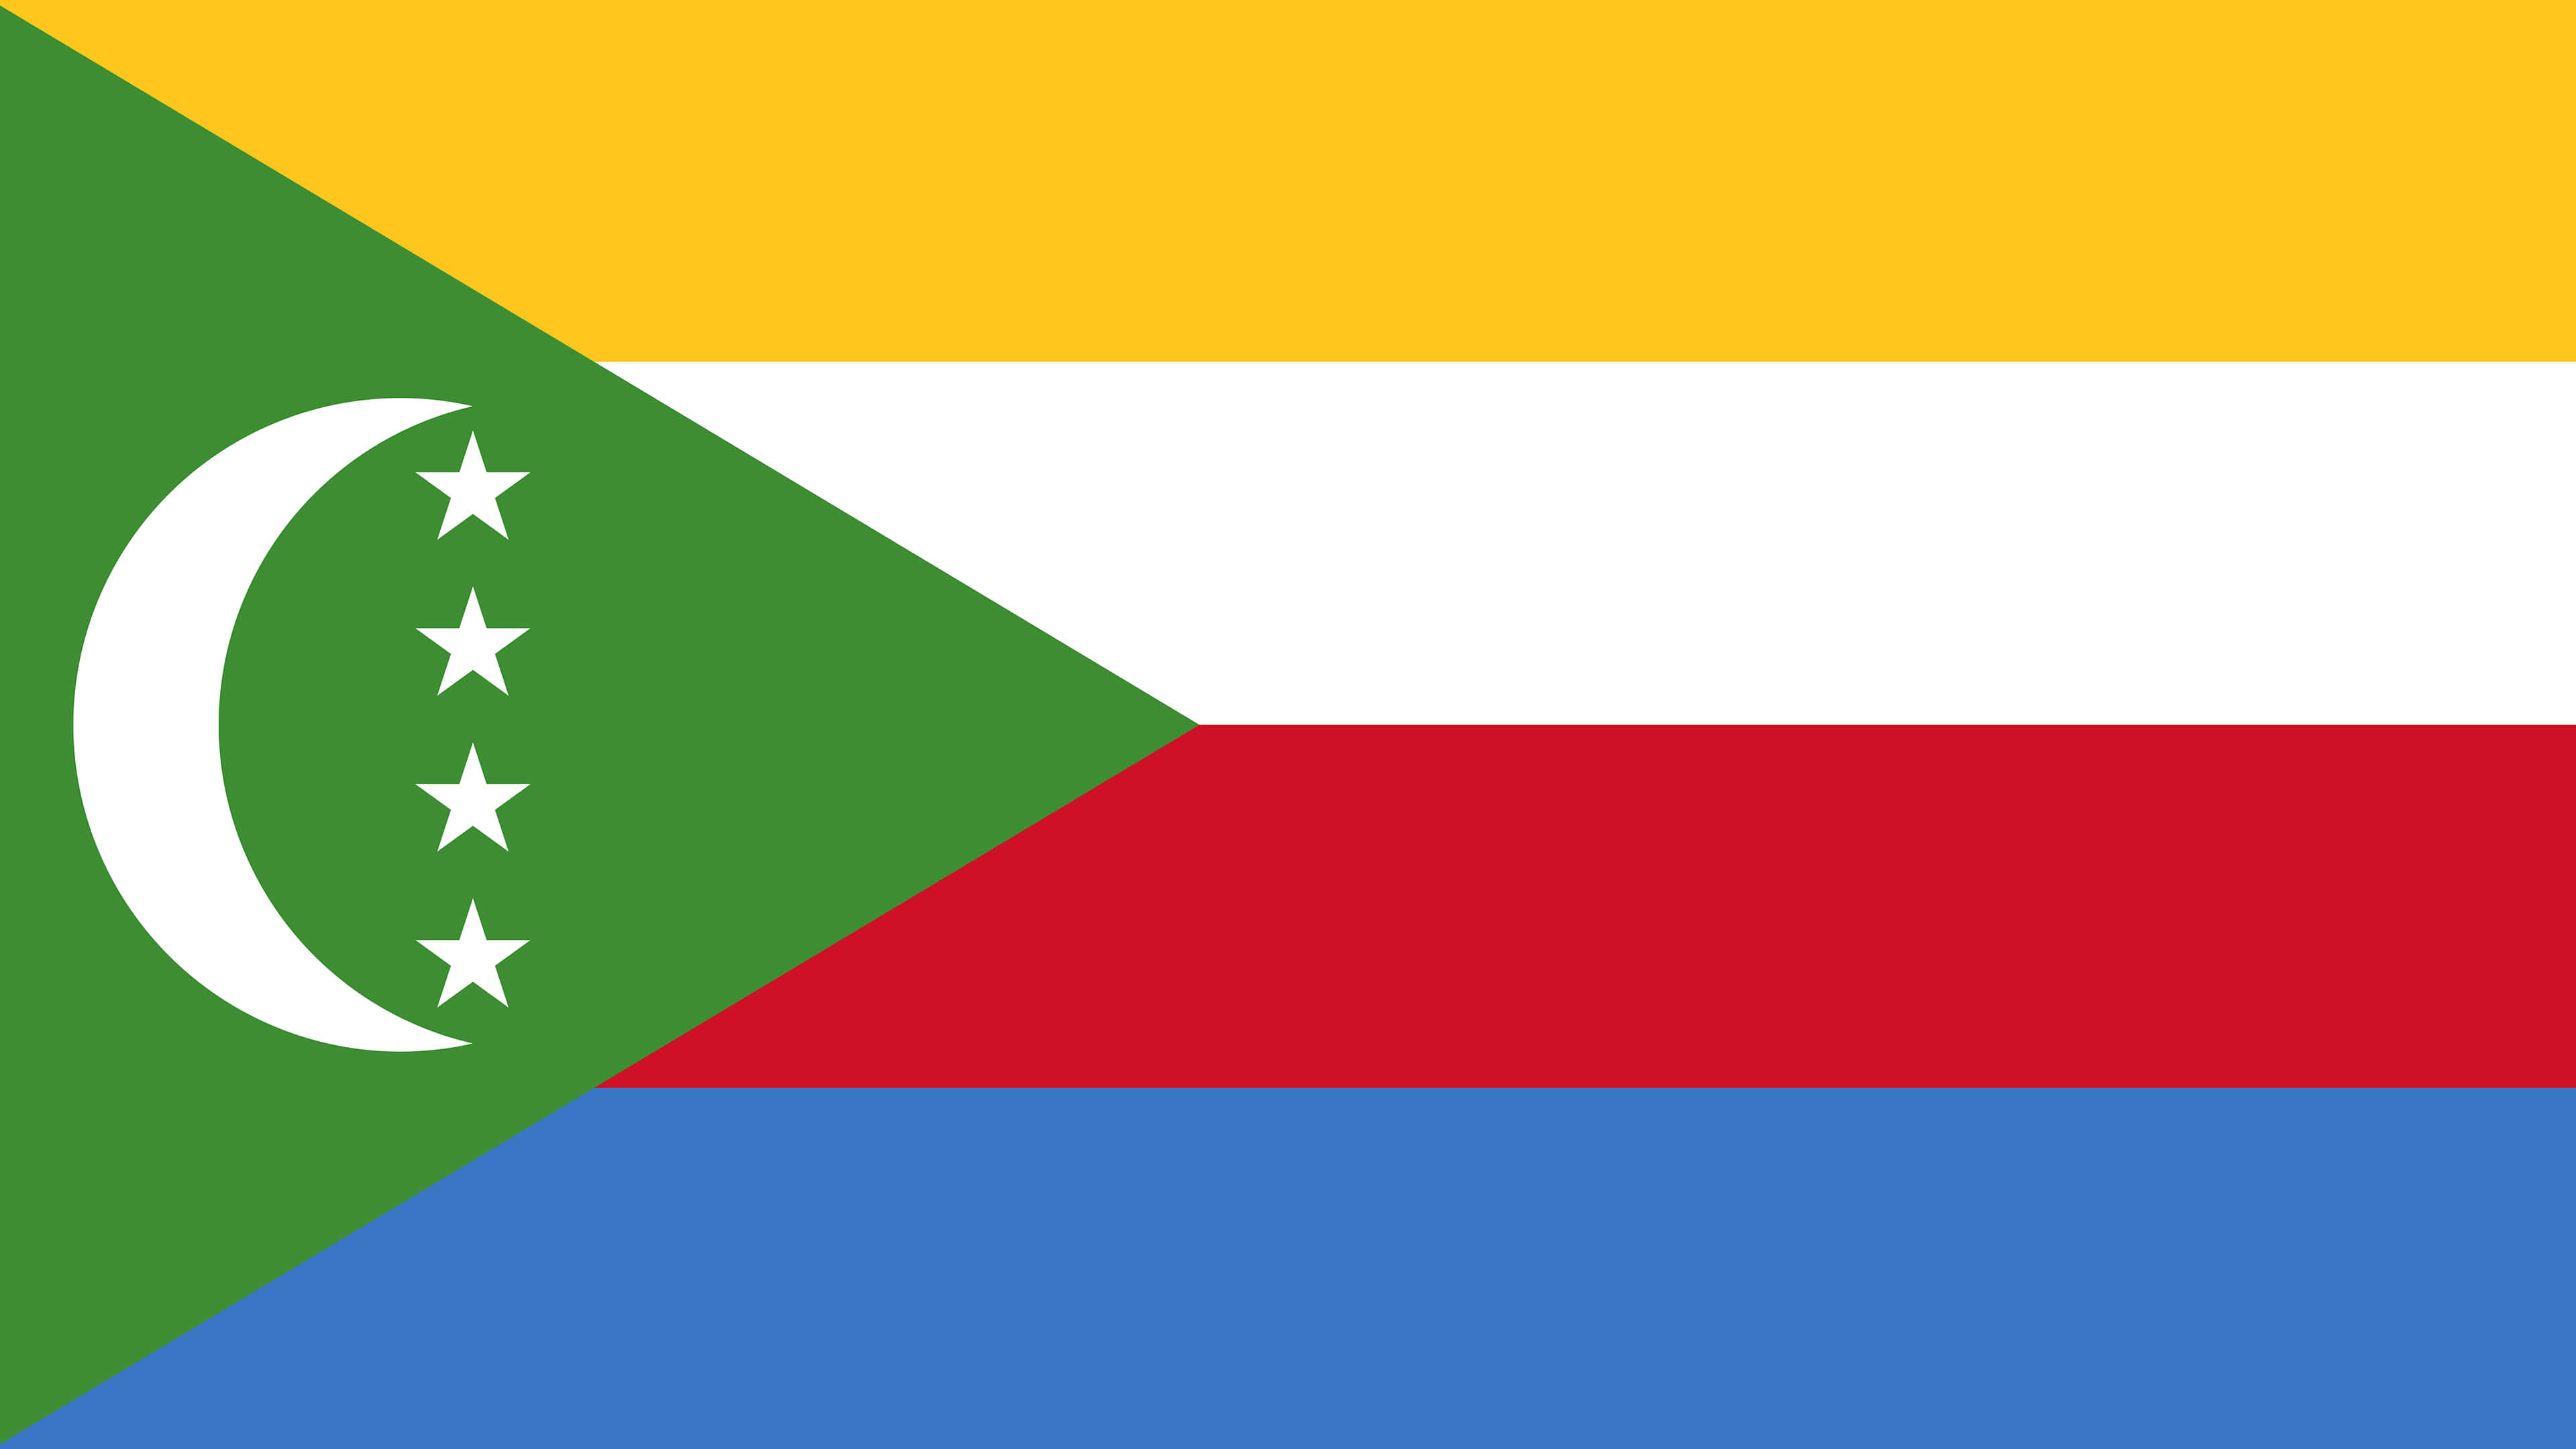 comoros flag uhd 4k wallpaper